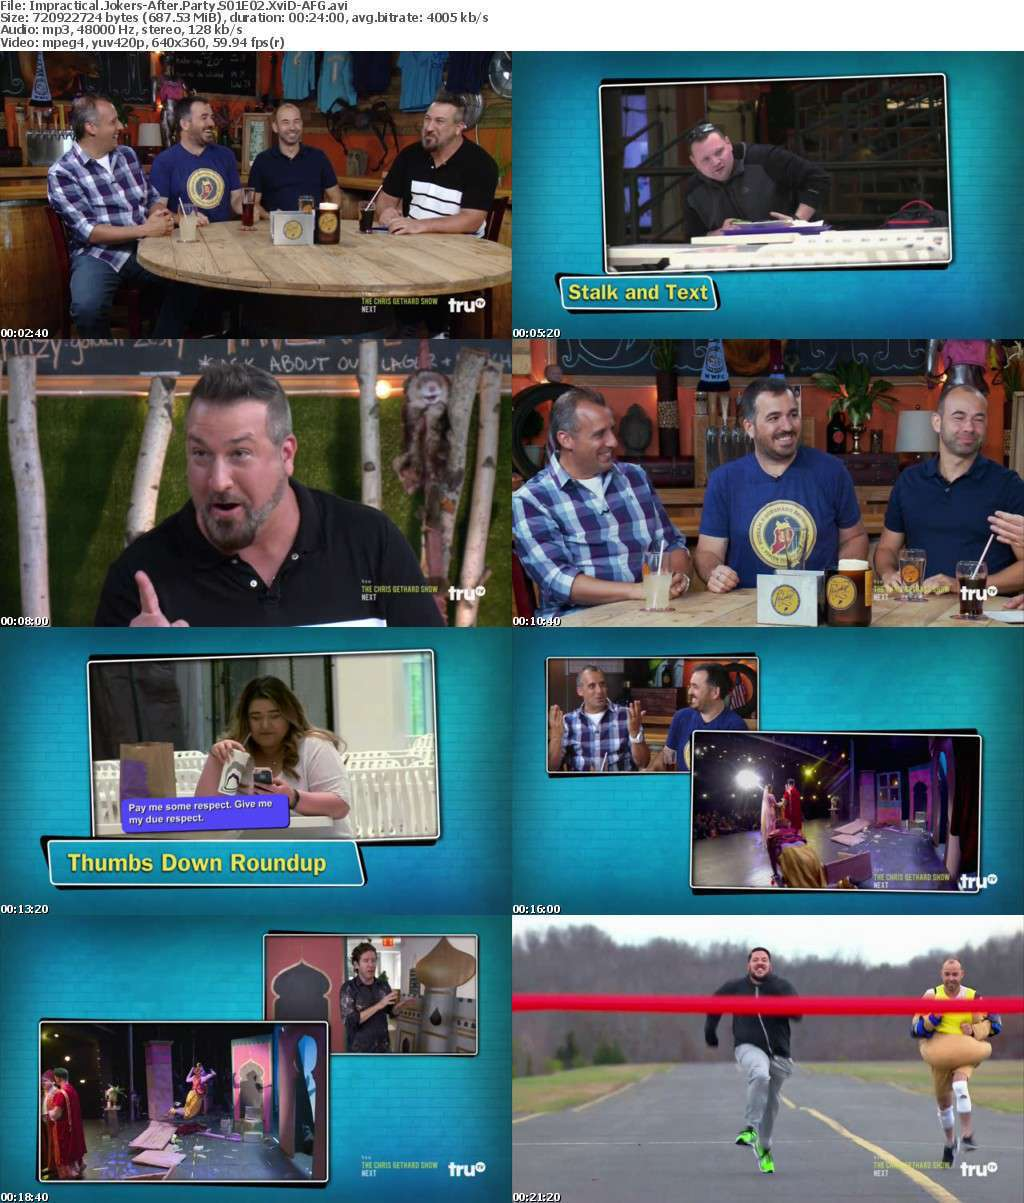 Impractical Jokers-After Party S01E02 XviD-AFG